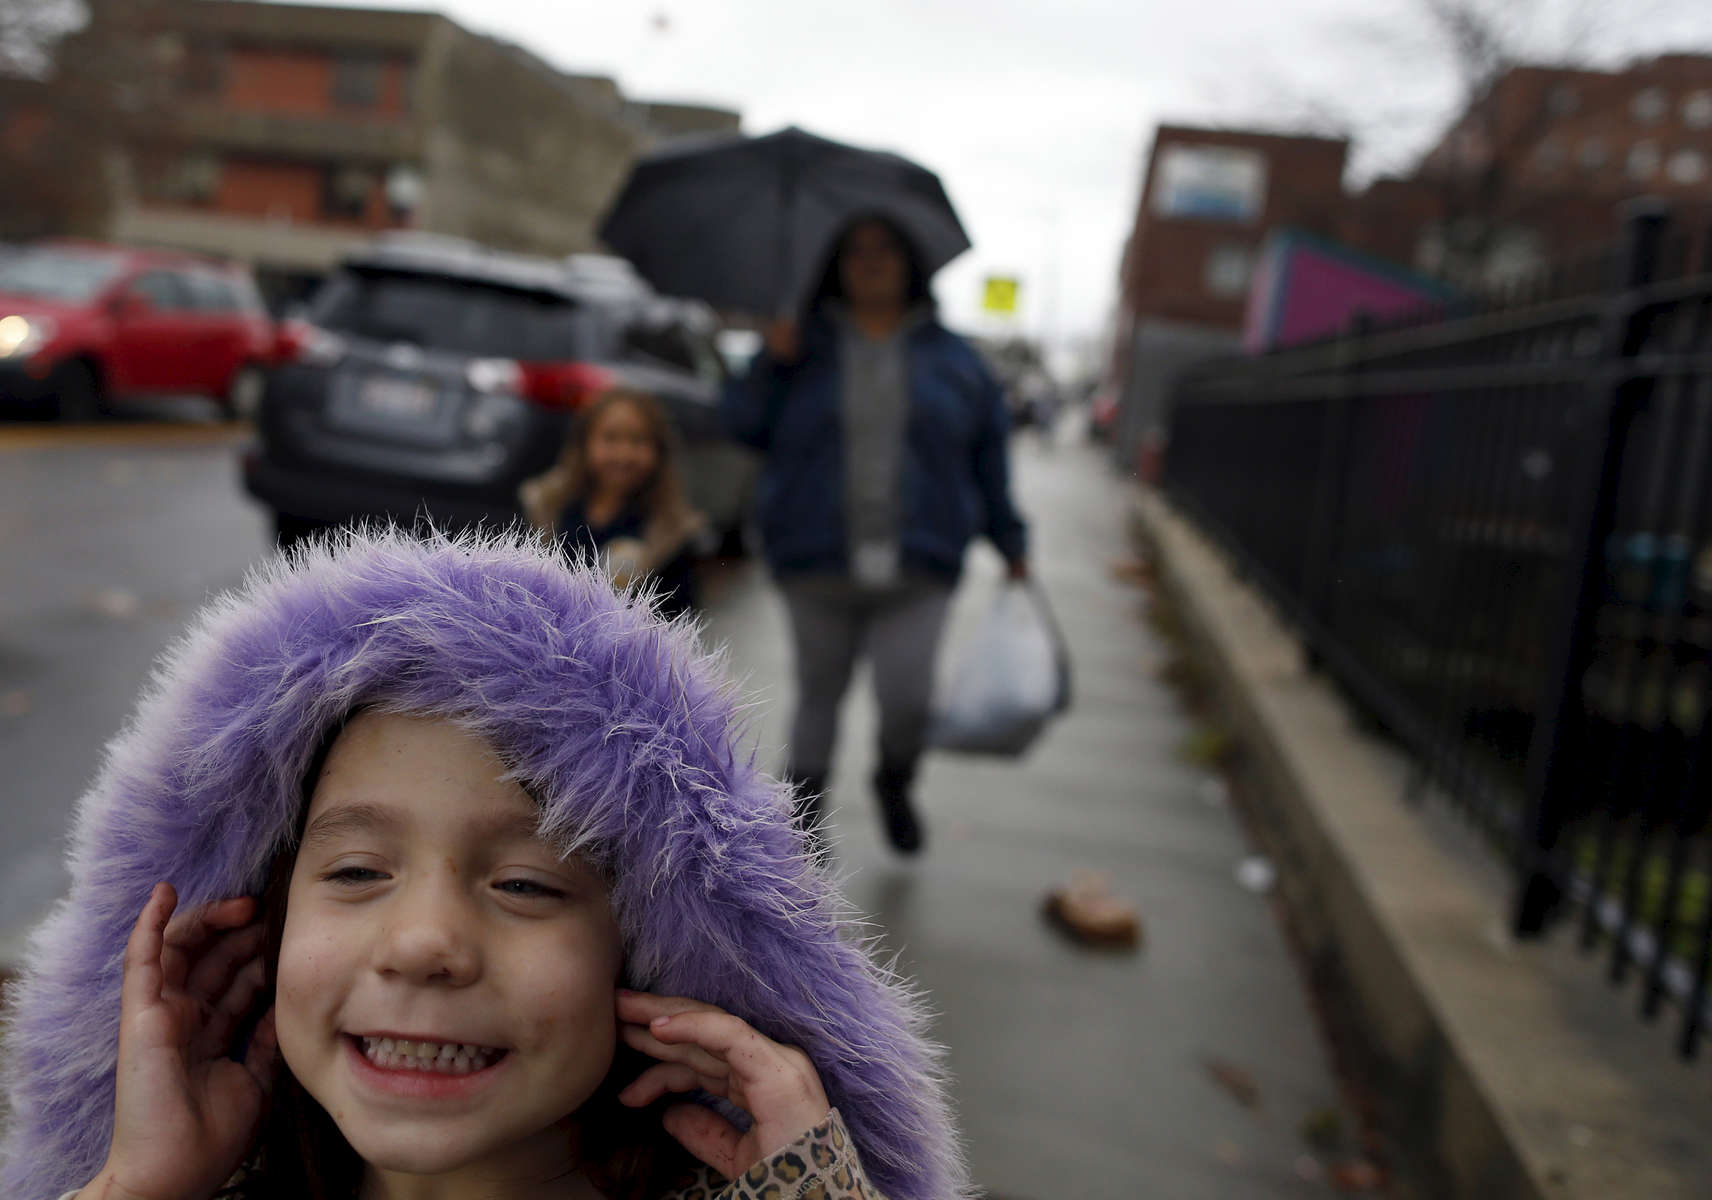 Estrella laughs as she runs ahead of her mother and sister on their walk home from school. Raquel is determined to get clean for her two young daughters. {quote}I want them both to have a childhood that I never knew existed. Happiness, joy, love...{quote} she said.